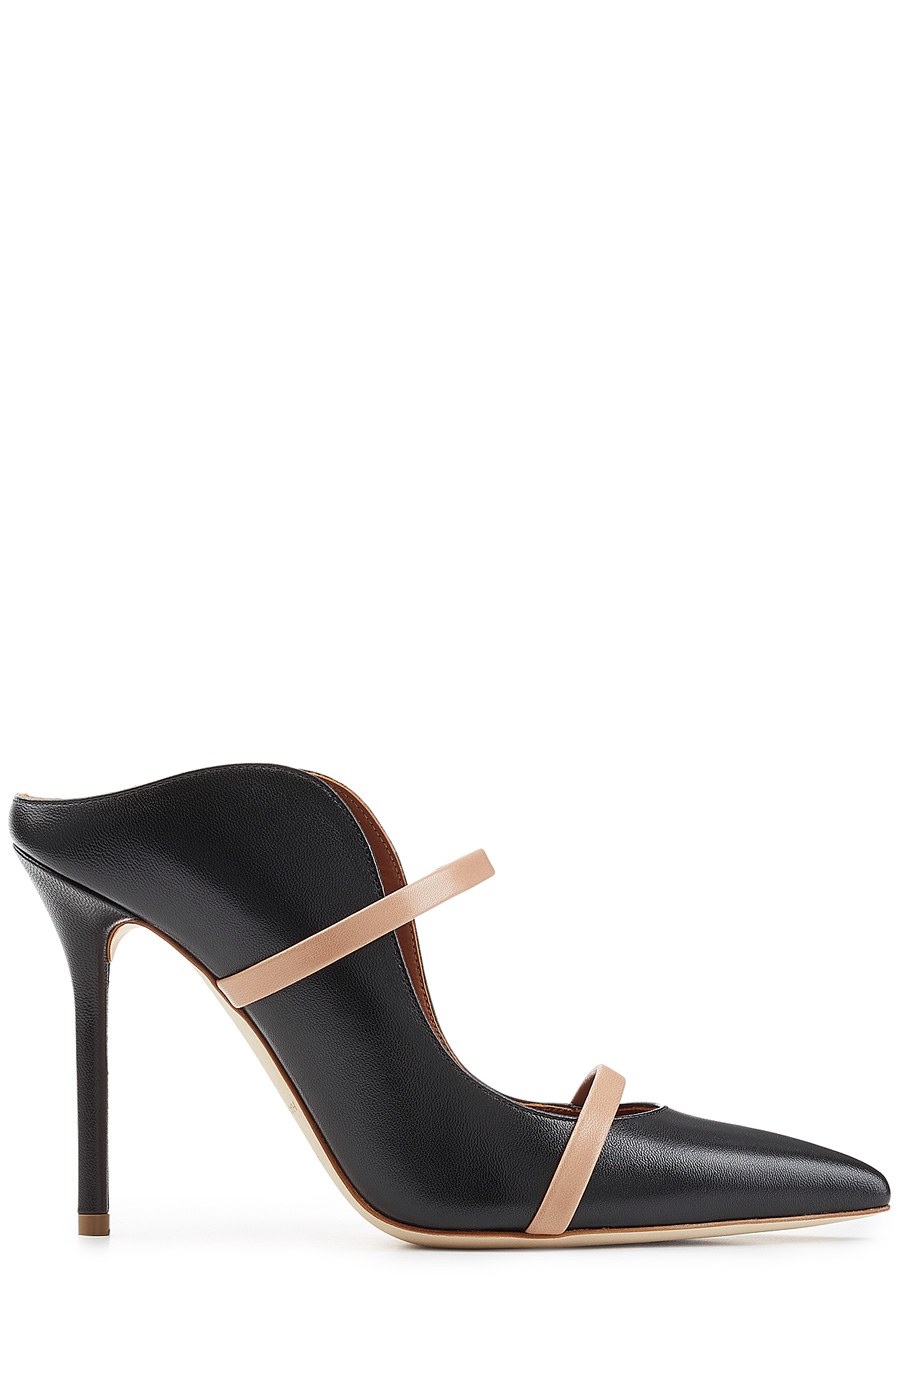 34b02bc9a3 Malone Souliers Maureen Black And Nude Nappa Leather High Heel Mules ...